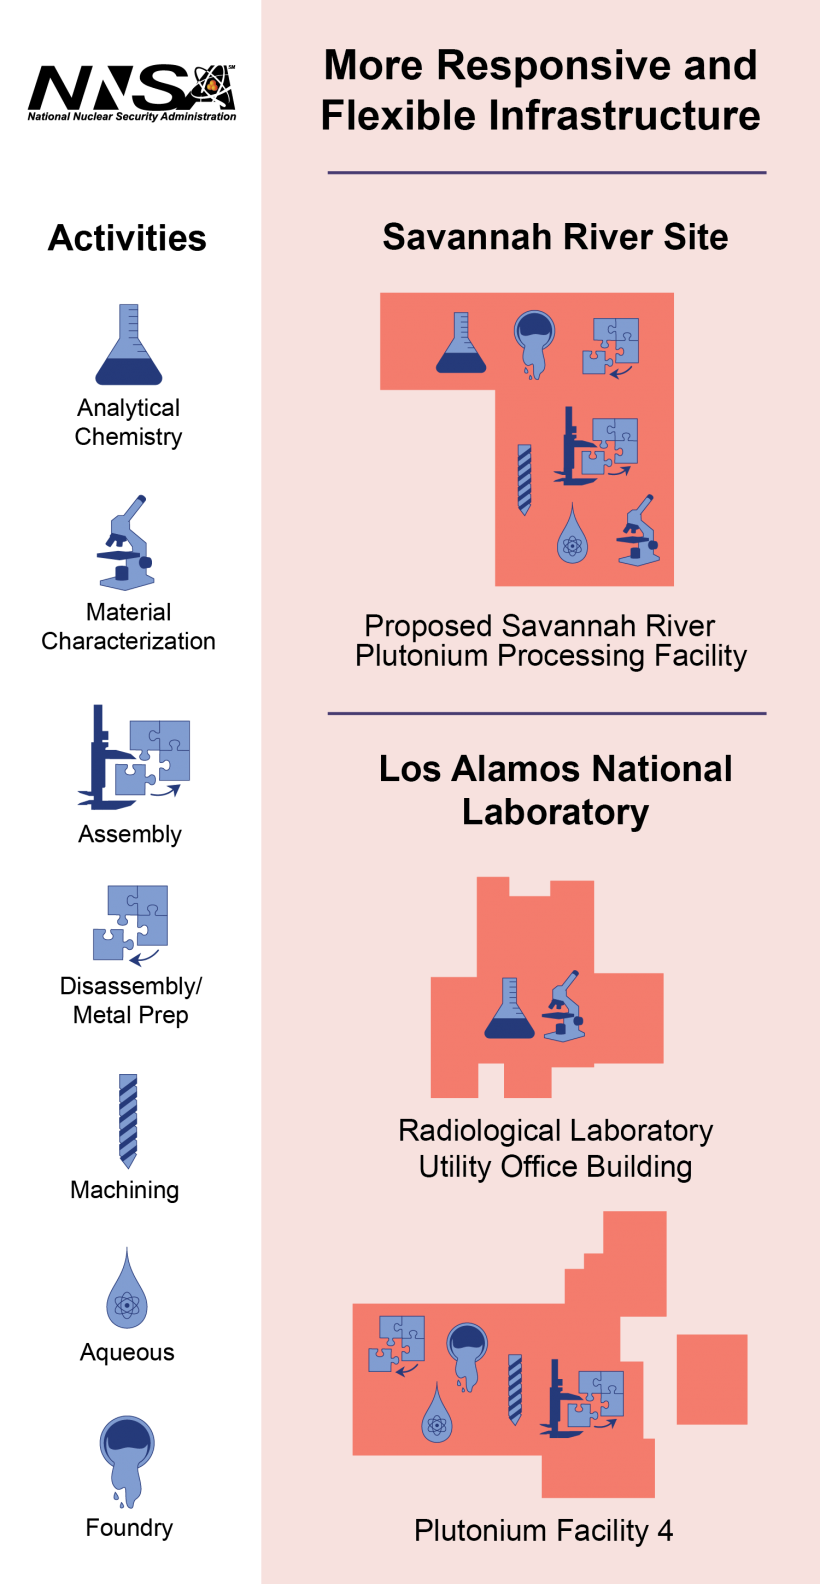 A graphic showing the Los Alamos National Lab and the Savannah RIver Site's roles in plutonium pit production.